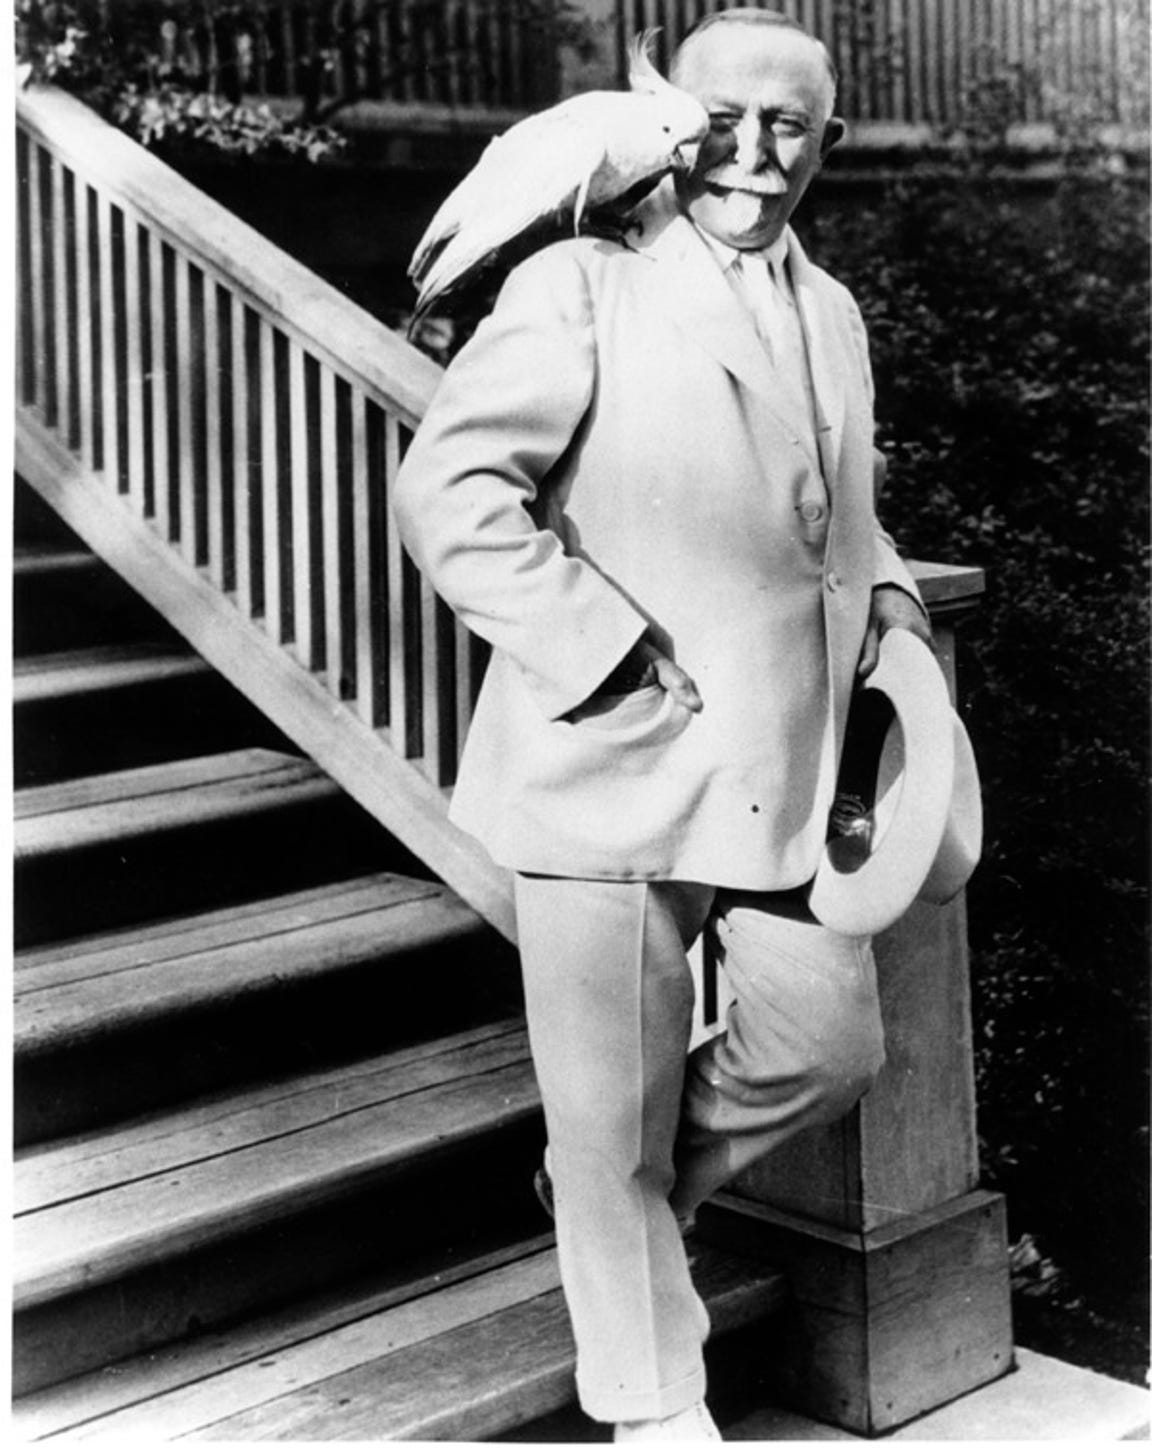 Dr. John Harvey Kellogg wearing his trademark all-white suit with his pet cockatoo on his shoulder.